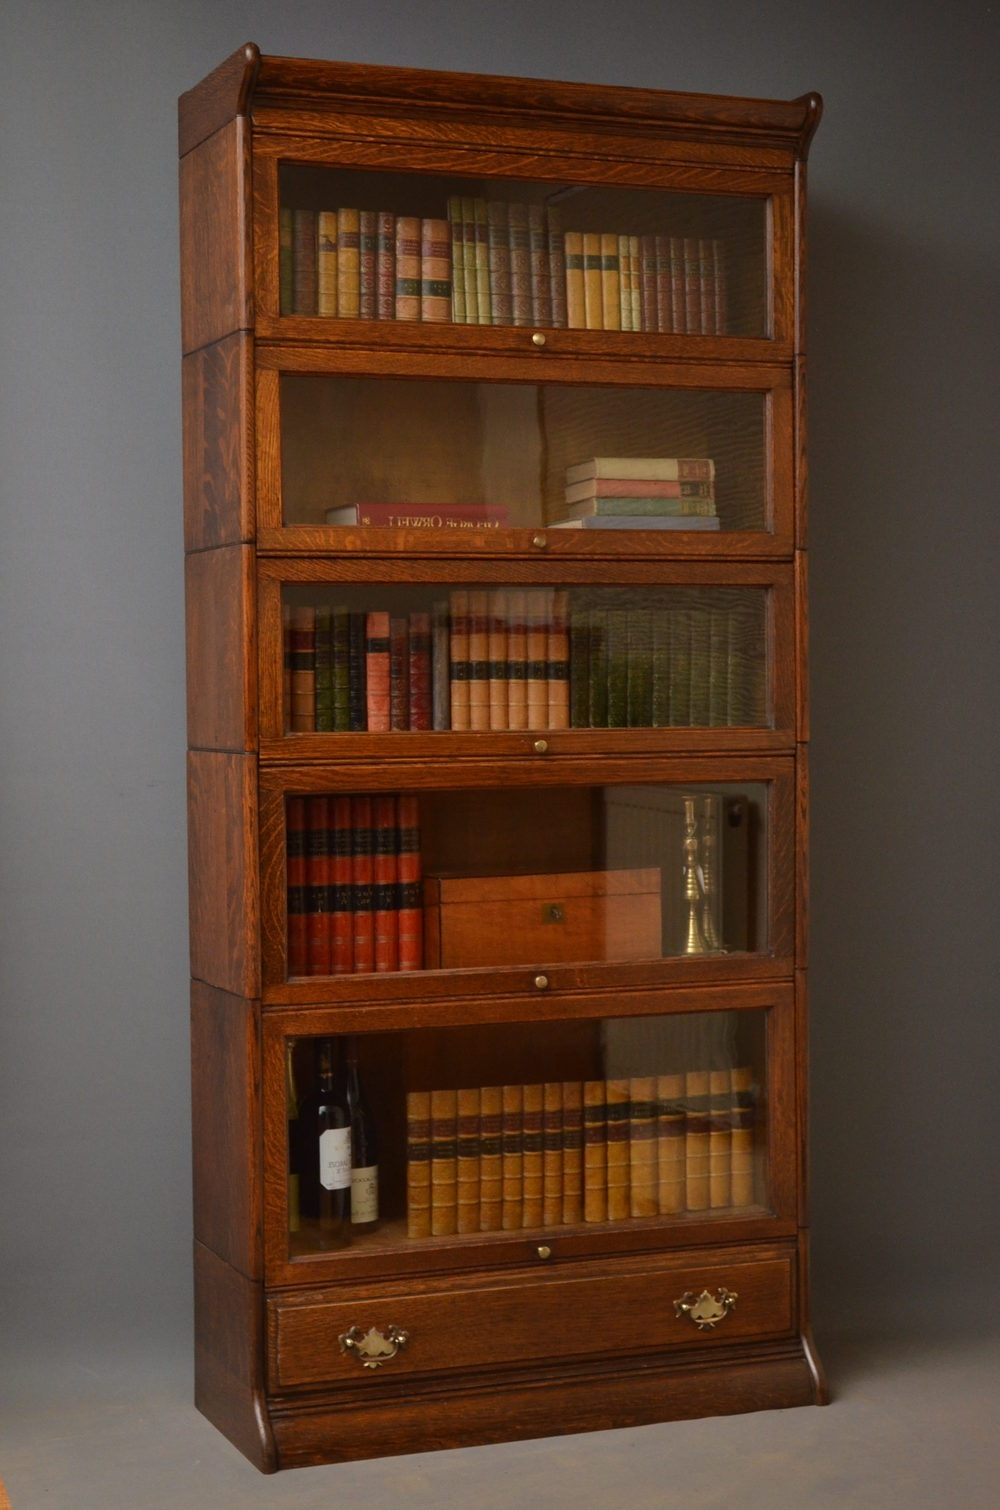 Antique Bookcase Edwardian Era – Antiques Atlas Intended For 2018 Antique Bookcases (View 4 of 15)